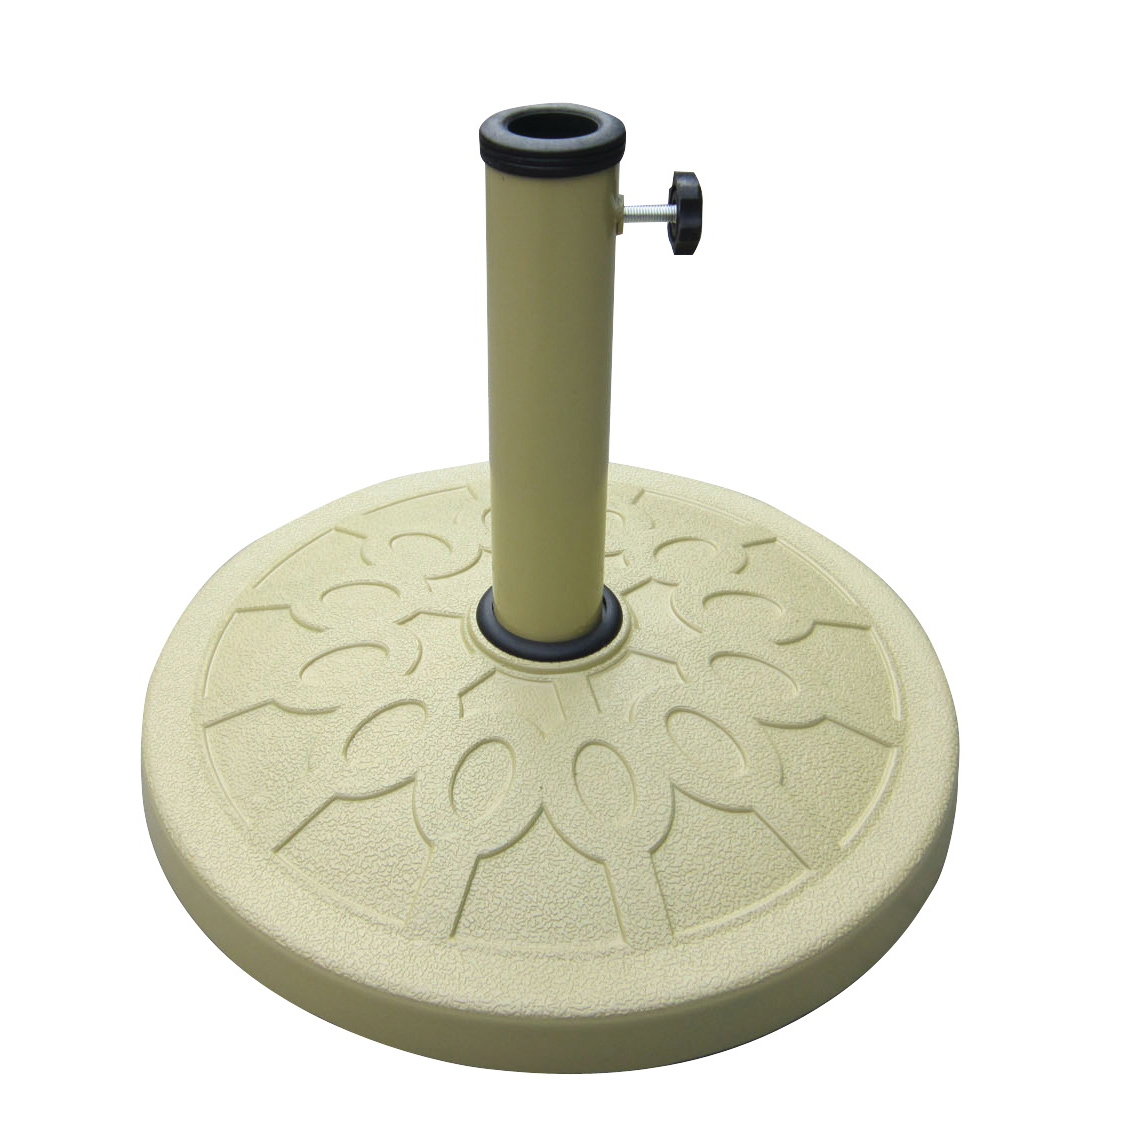 Picture of Seasonal Trends 69329 Umbrella Base, 17-1/2 in Dia, 13 in H, Round, Resin/Steel/Plastic, Sandstone